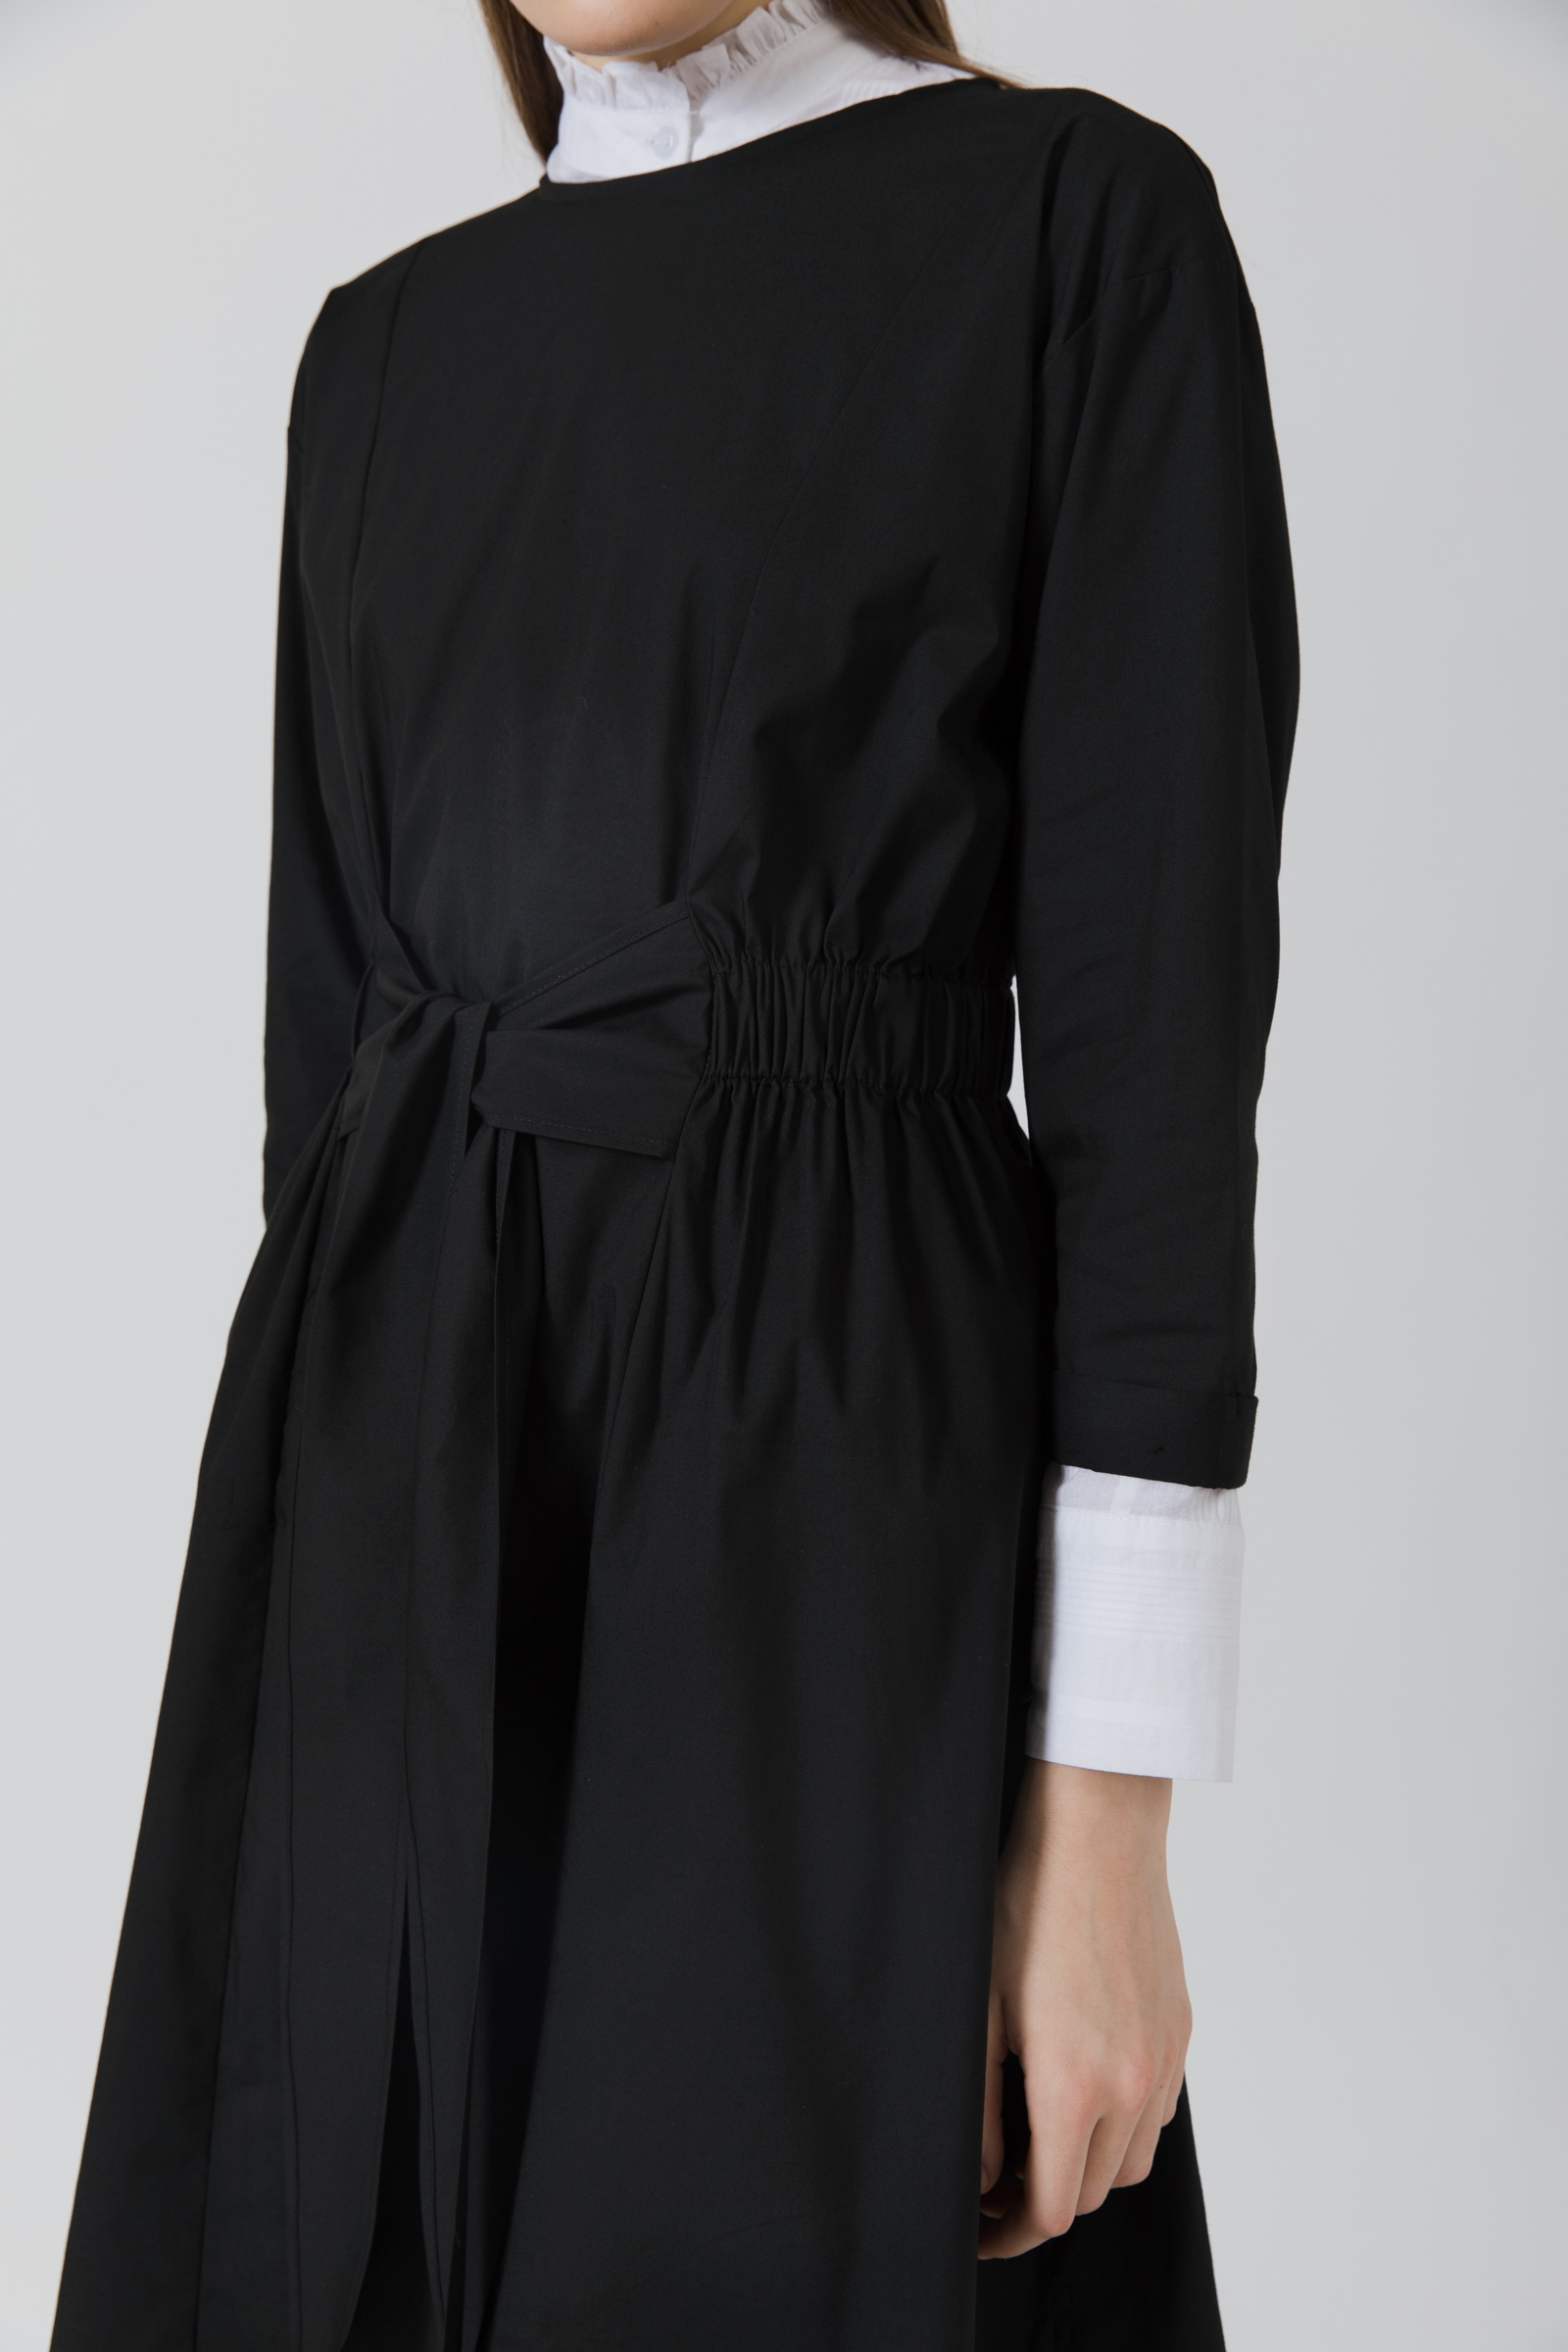 Picture of Resorta Dress Black